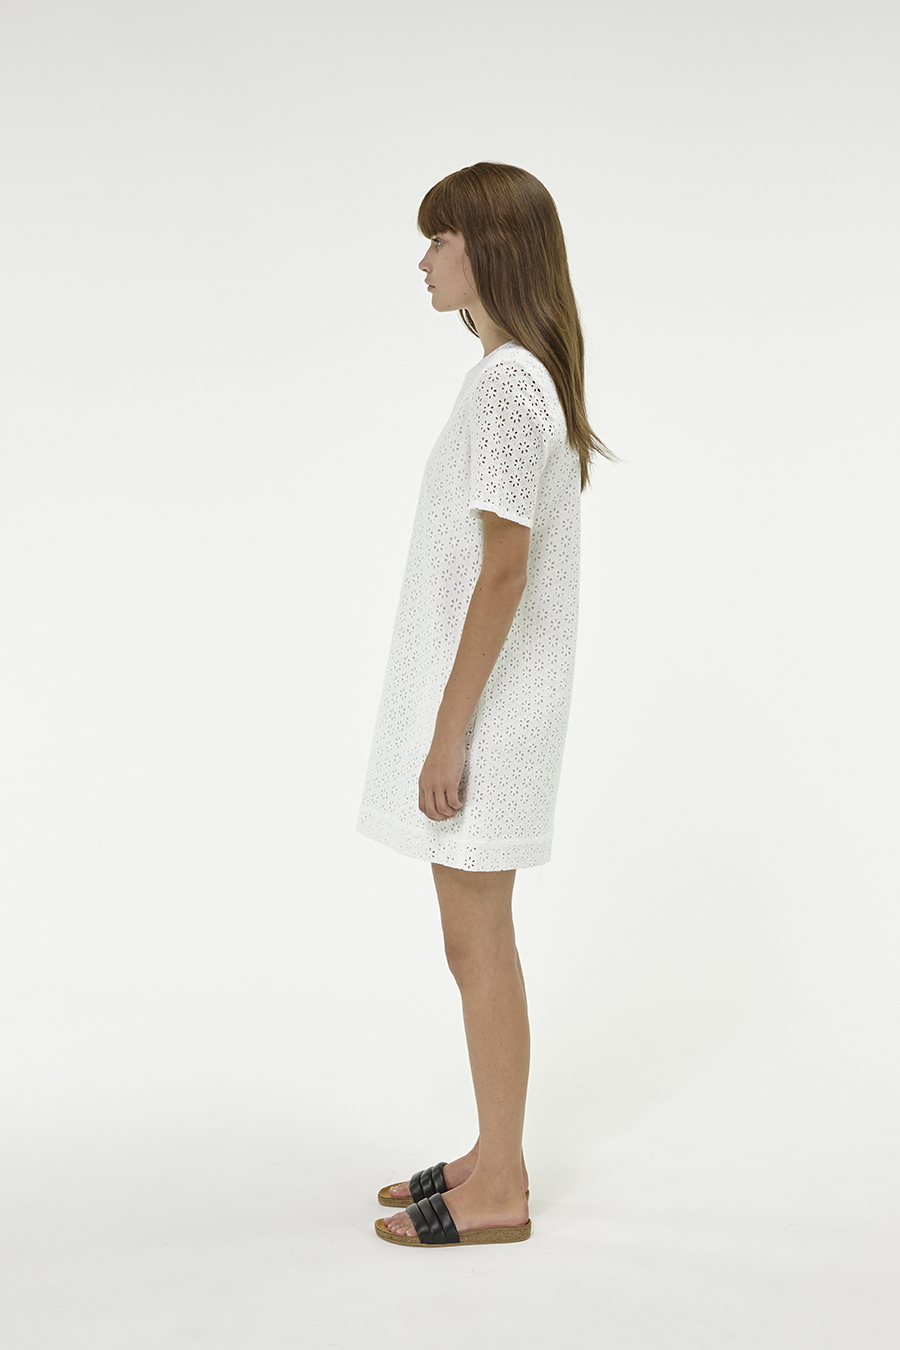 Huffer_Q3-16_W-Hope-Shell-Dress_White-02